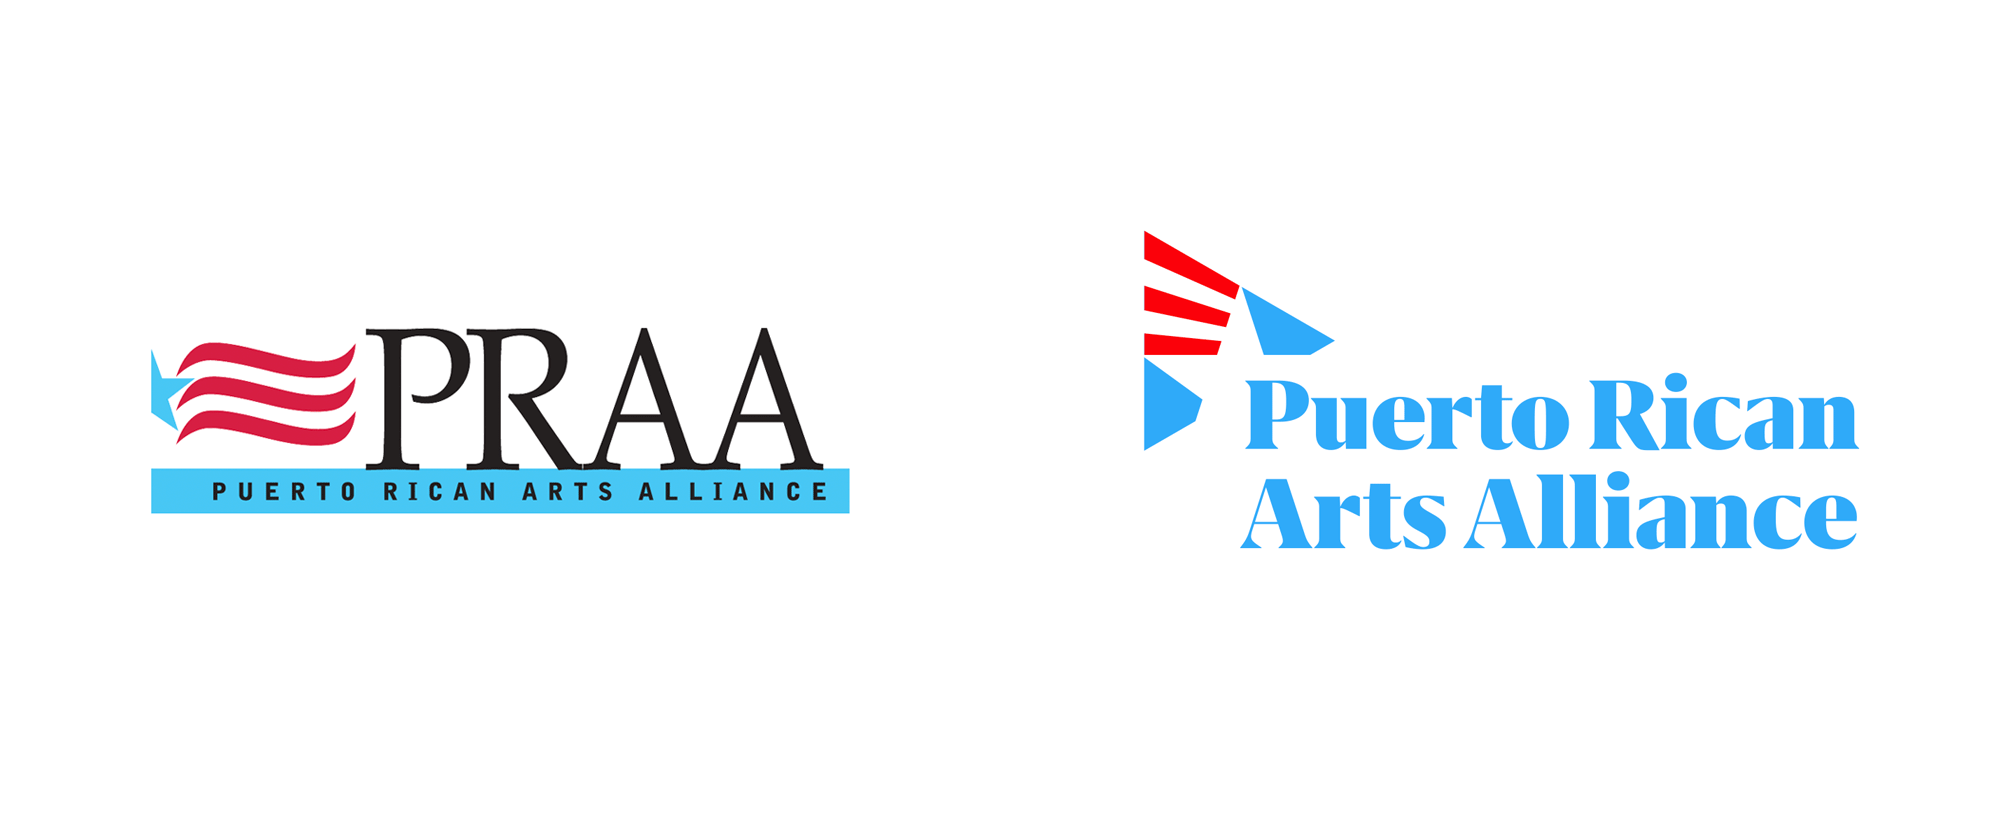 New Logo and Identity for Puerto Rican Arts Alliance by True Story